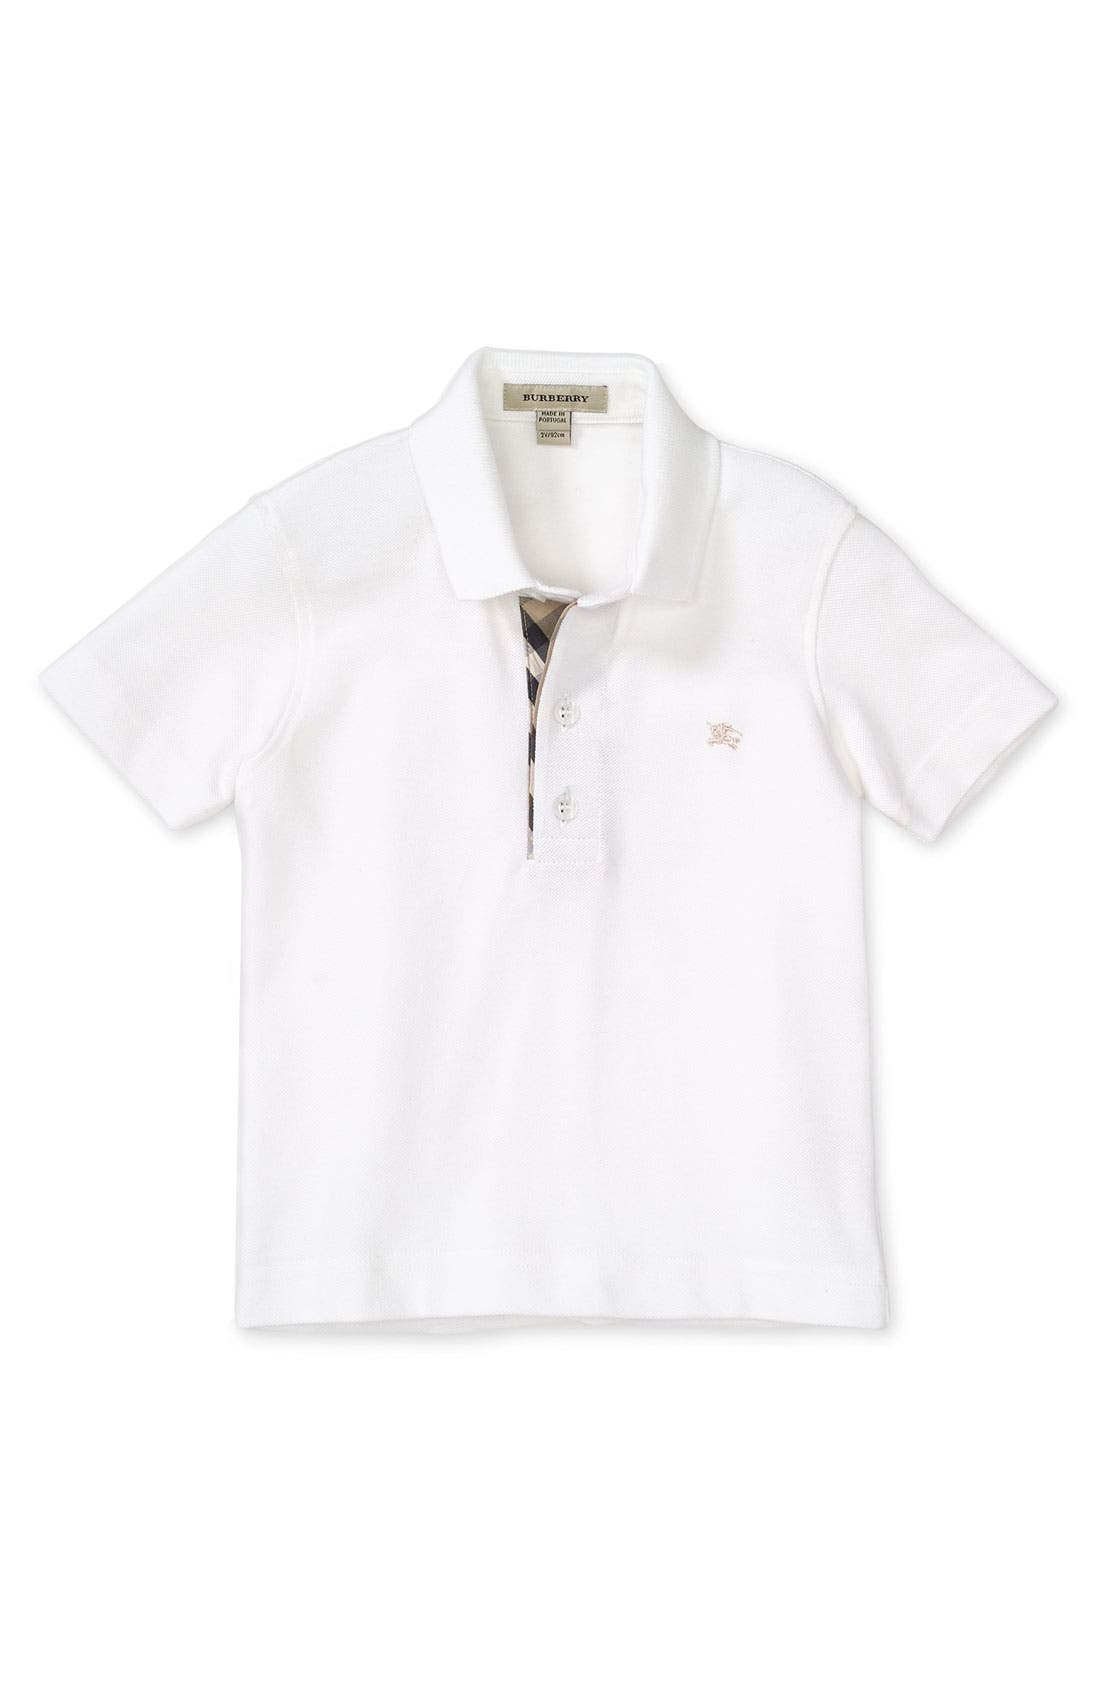 Alternate Image 1 Selected - Burberry Short Sleeve Polo Shirt (Big Boys)